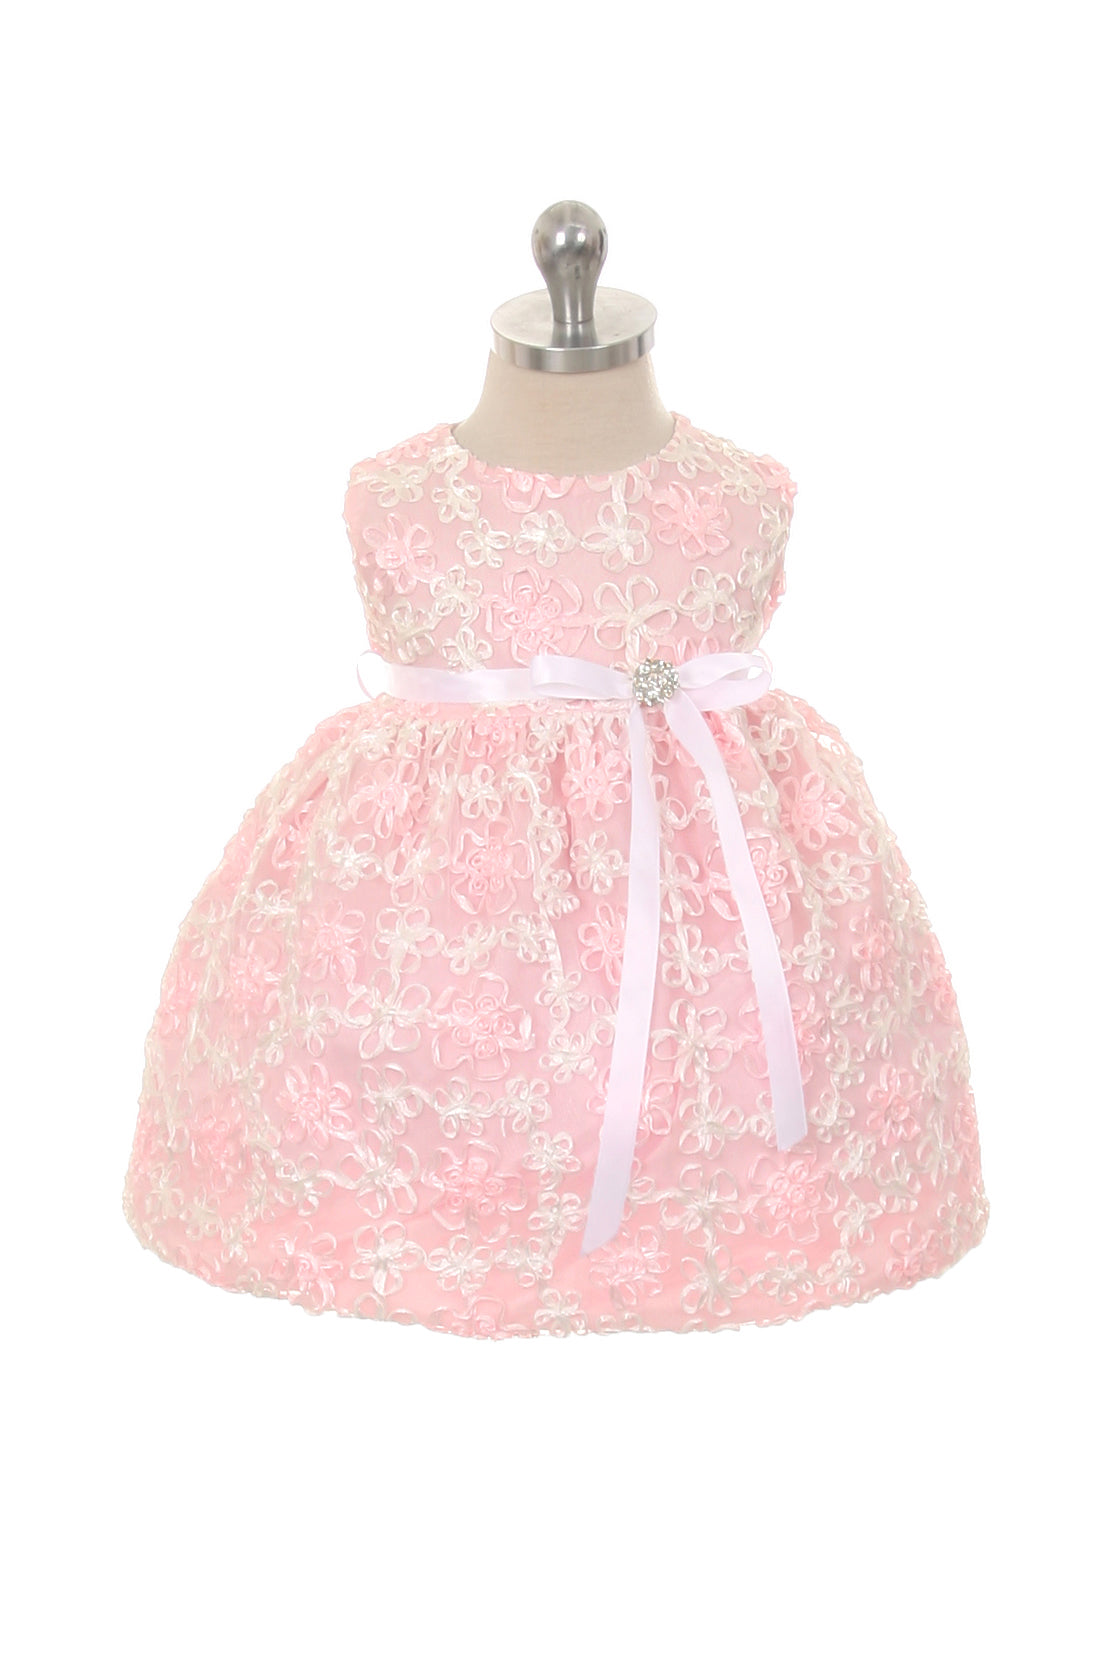 Satin Flower Embroidered Baby Dress